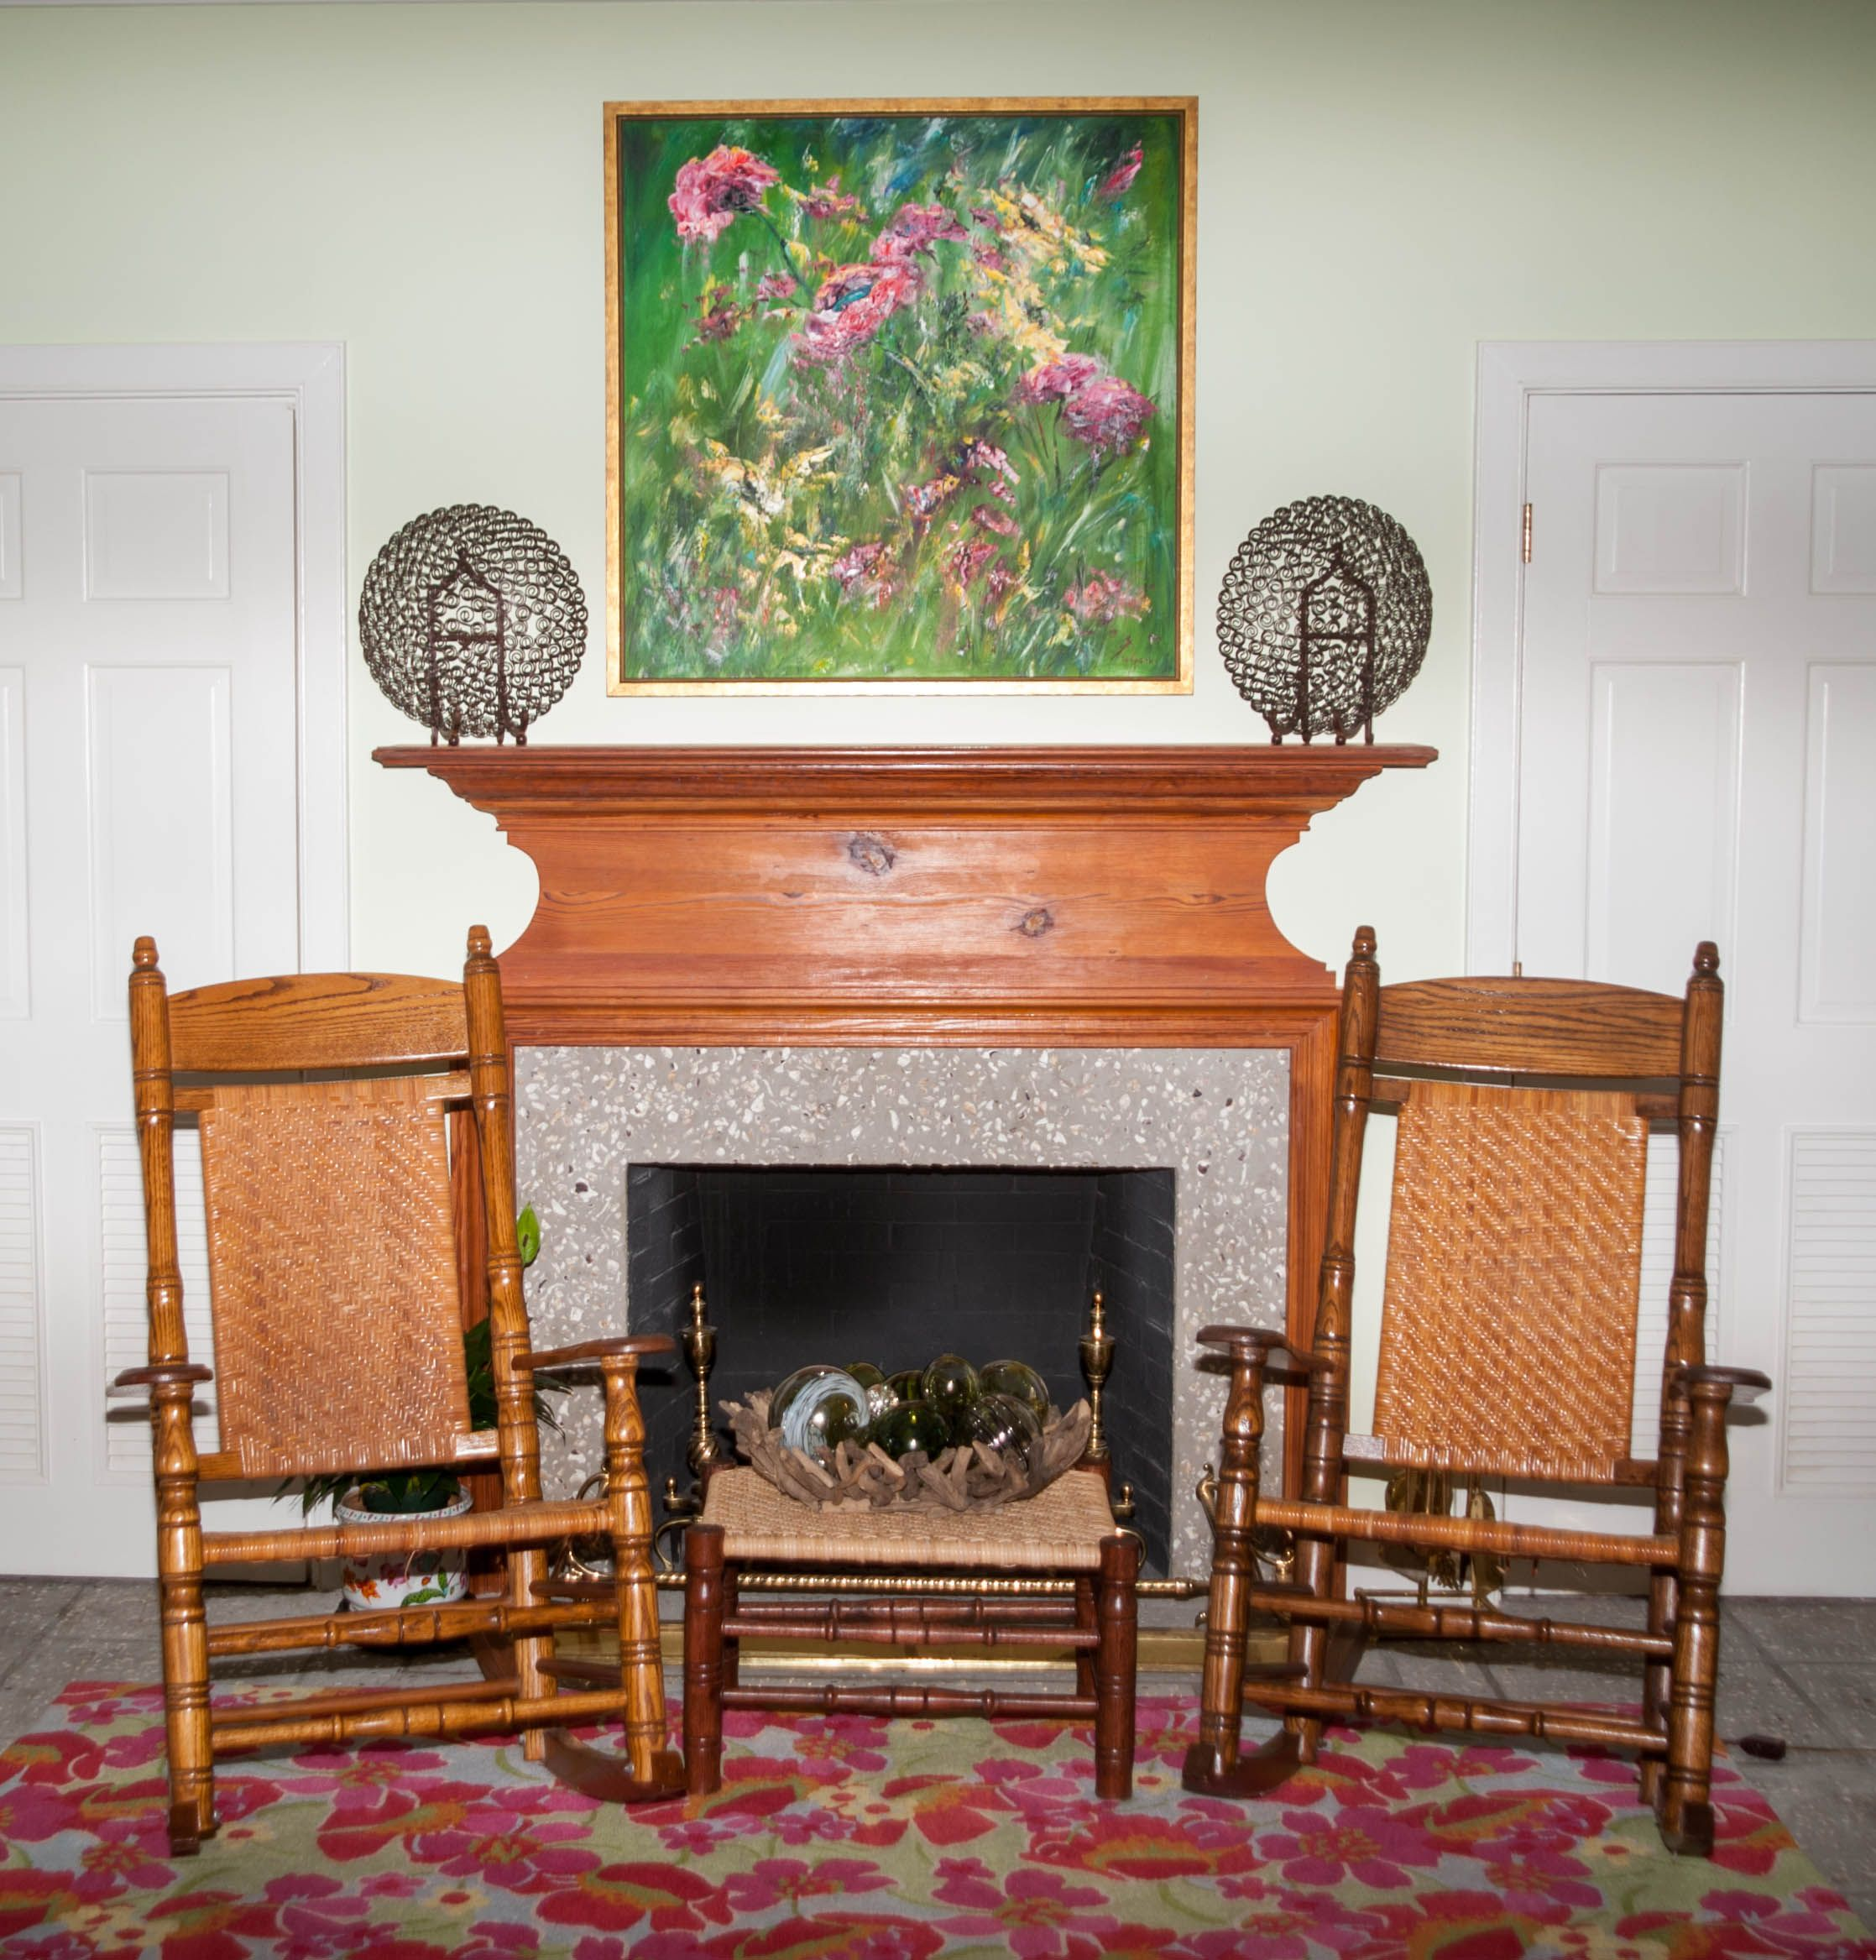 Couple Of Brumby Jumbo Rockers In Front Of A Fireplace And A Brumby Footstool Used As A Side Table Living Room Rocking Chairs Rocking Chair Porch Porch Rocker